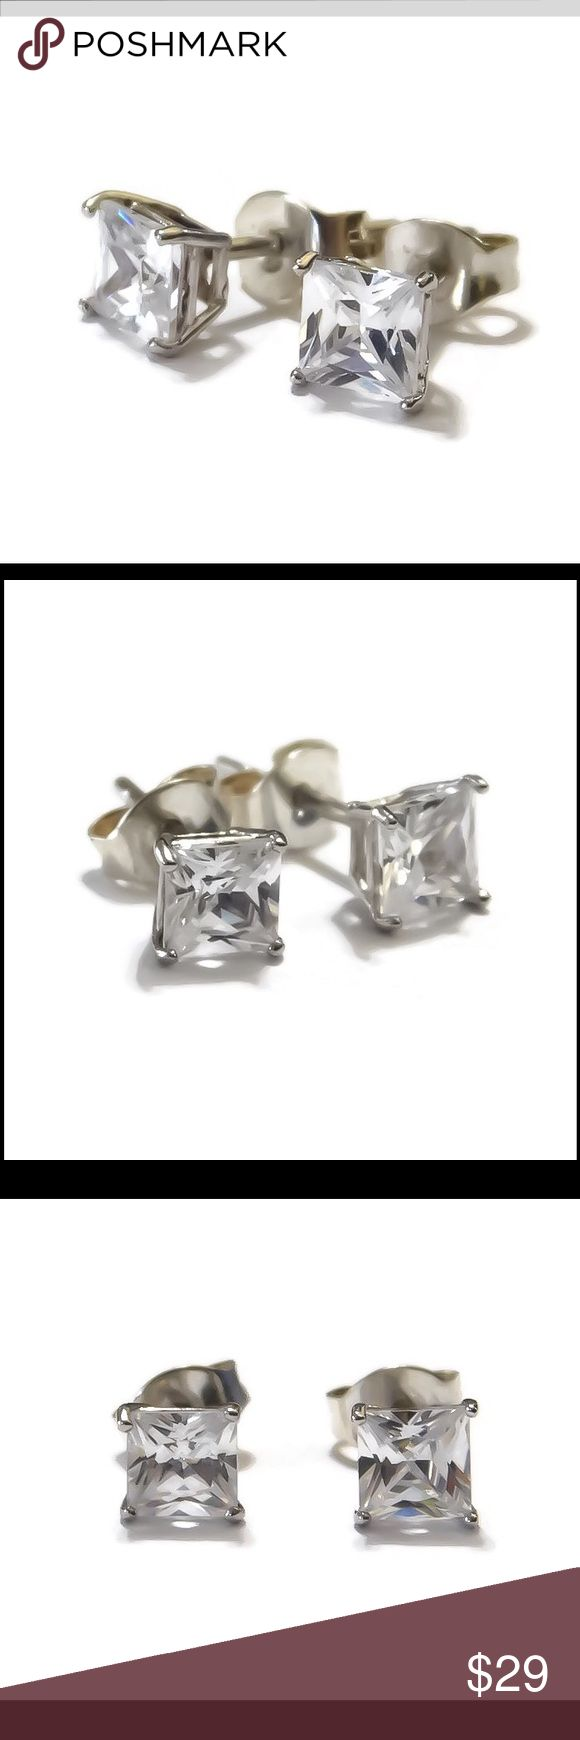 2CT CUSHION CUT 925 SWAROVSKI STUDS A simply stunning set of solid 925 sterling silver 2 carat genuine Swarovski crystal elements crystal stud-post earrings. Stamped 925. Includes sterling butterfly backs. Handcrafted, ready to ship. nejd Jewelry Earrings